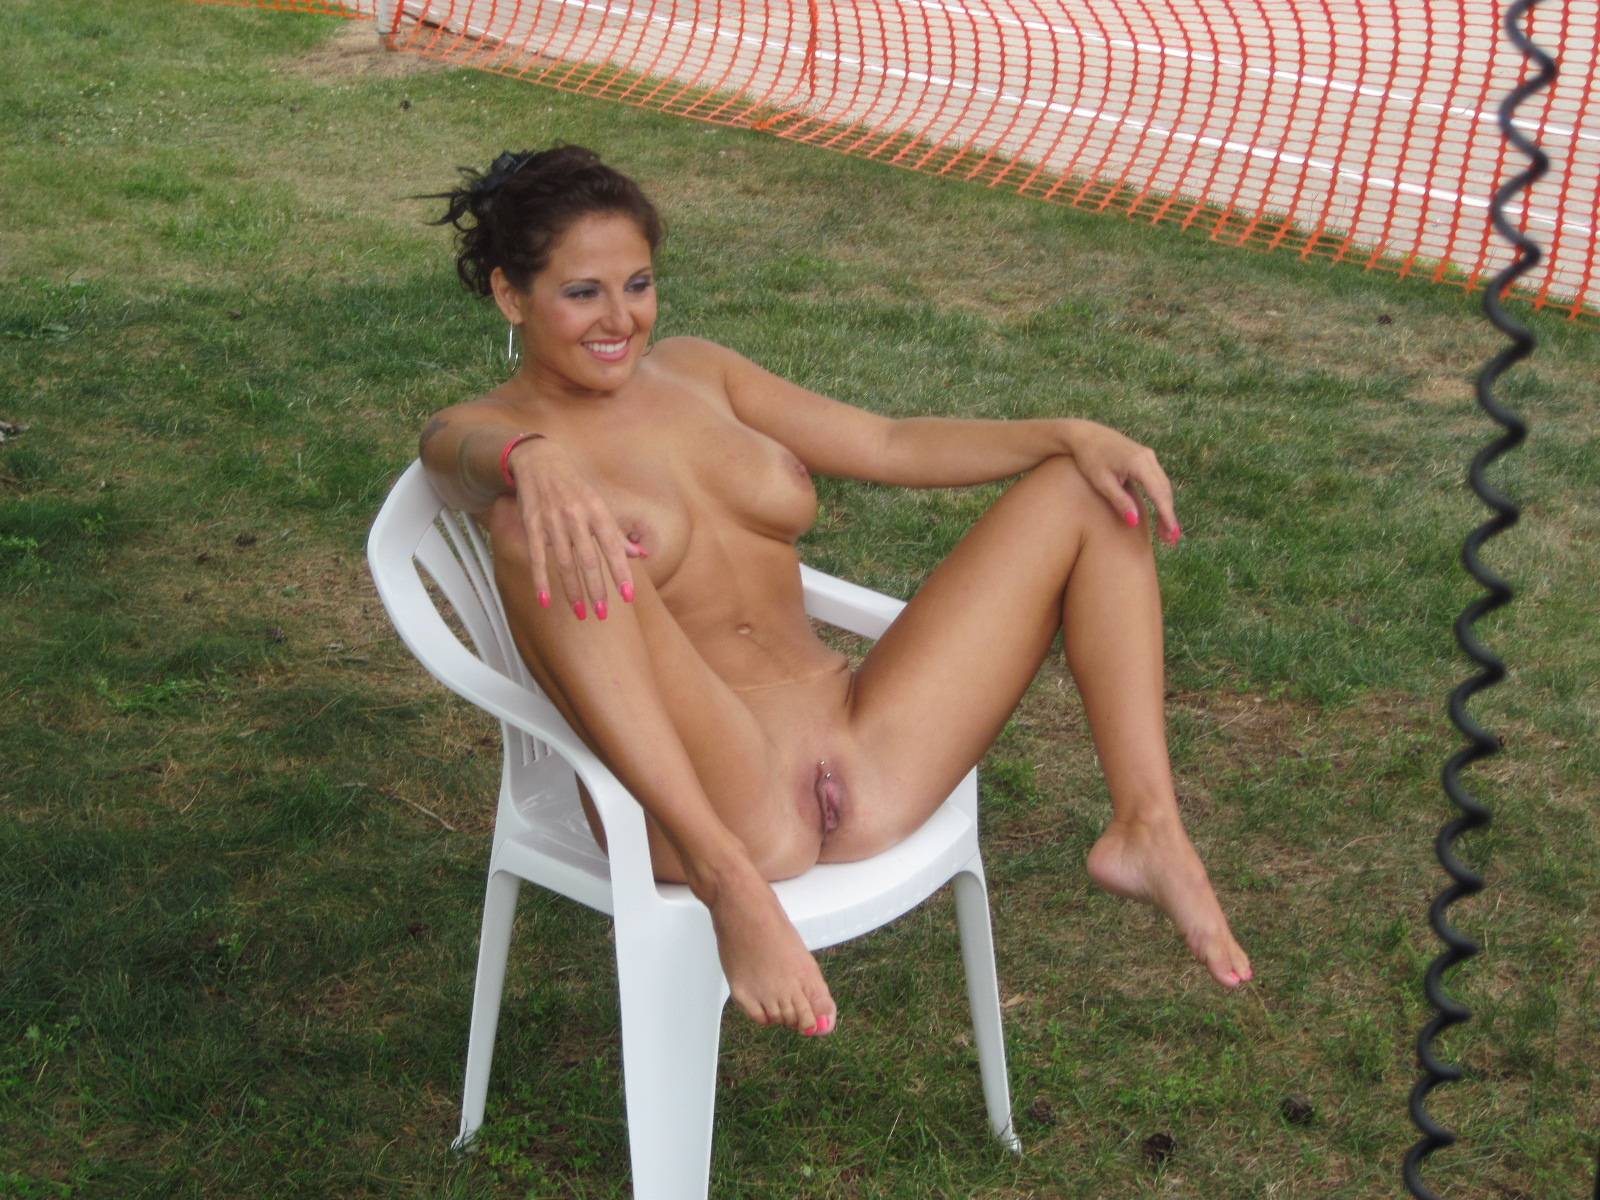 no legs naked women pic